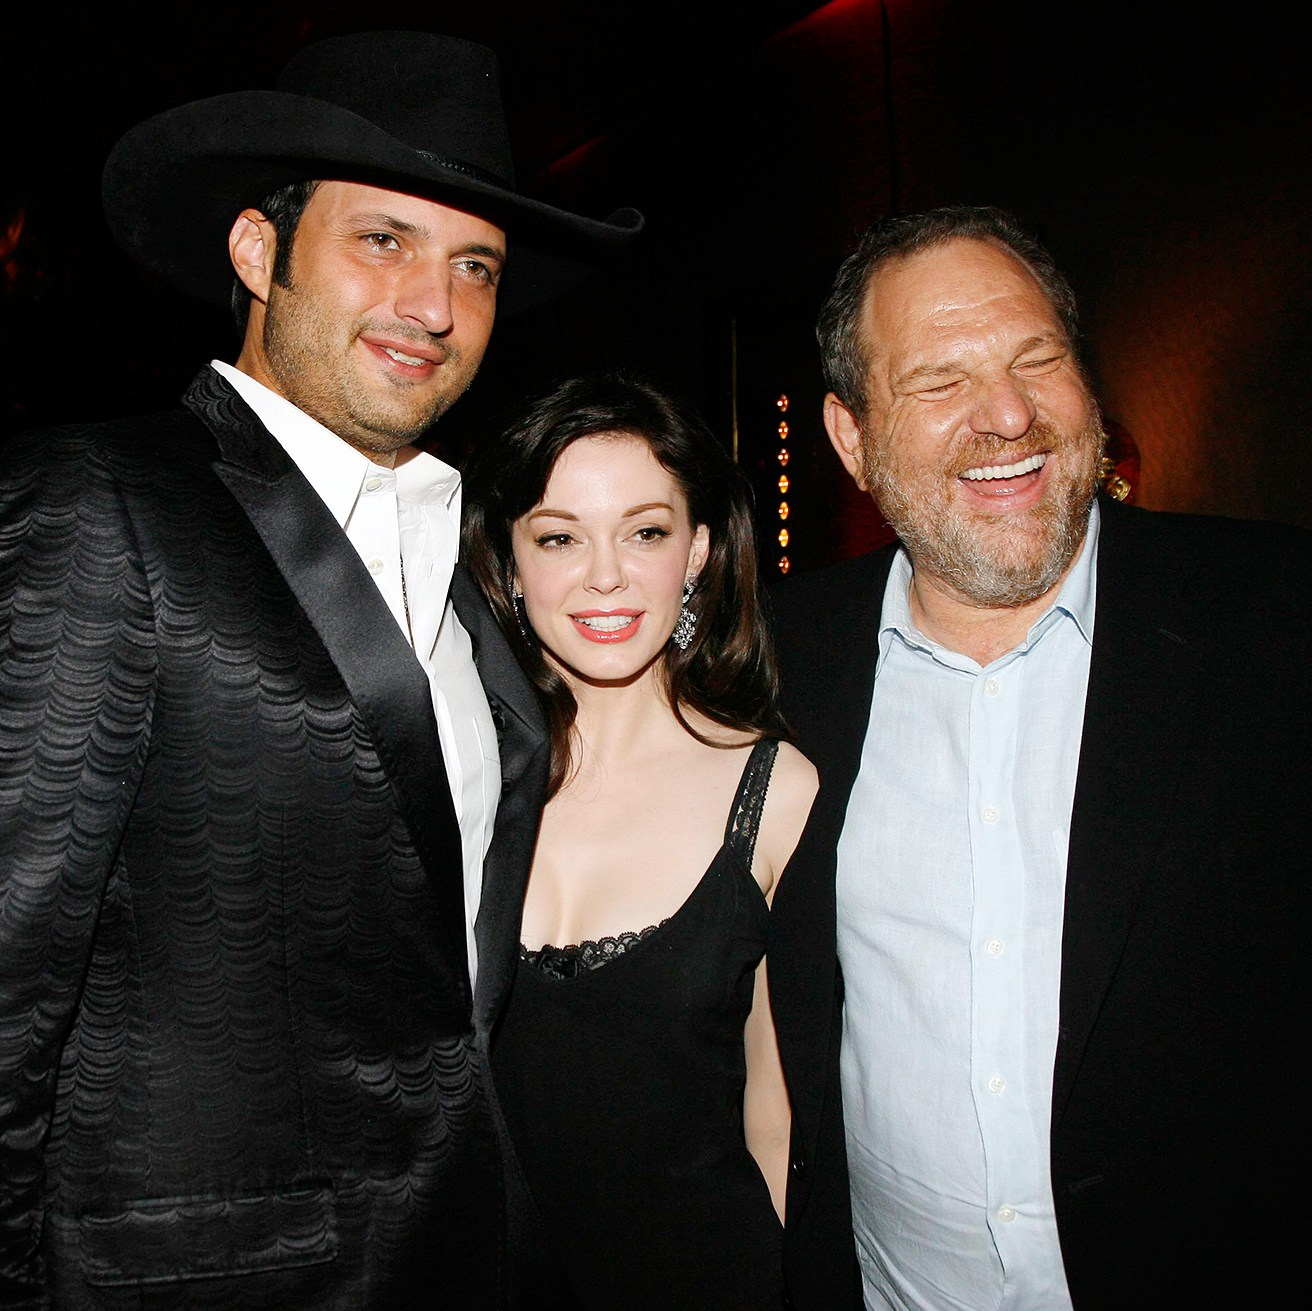 Robert Rodriguez Rose McGowan Harvey Weinstein